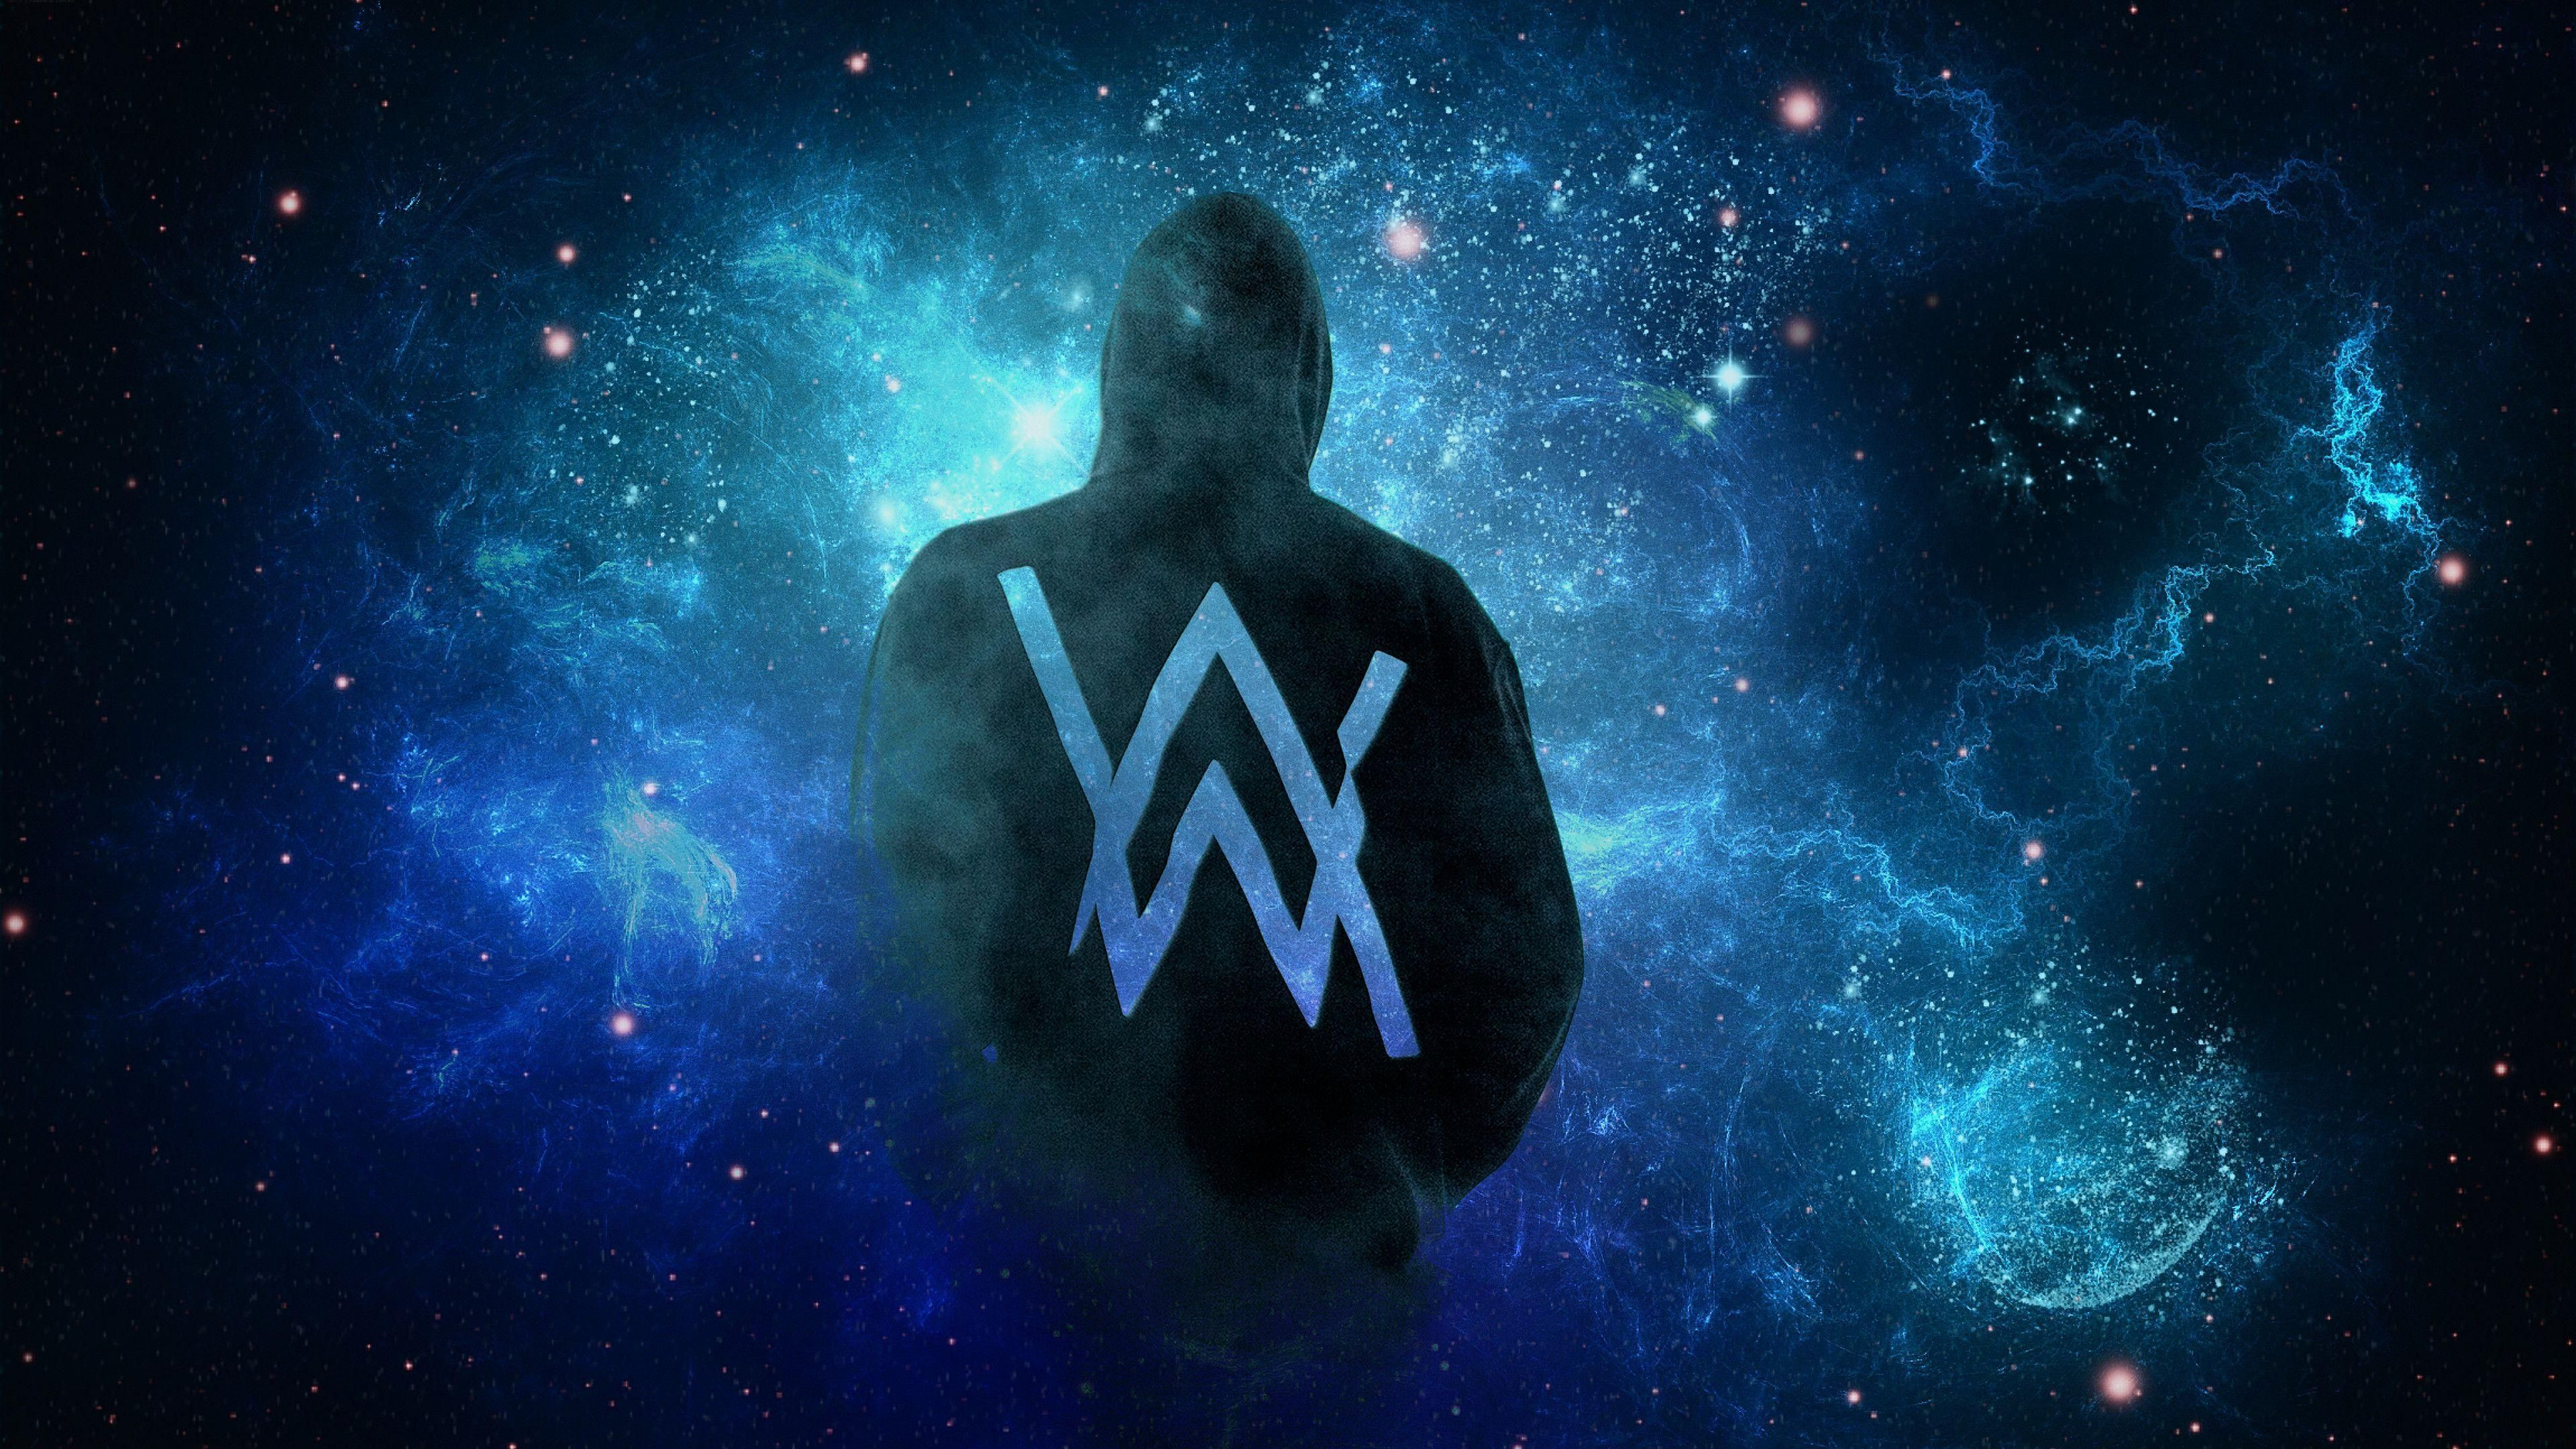 Alan Walker Wallpapers HD Full HD Pictures Alan walker in 2019 3840x2160